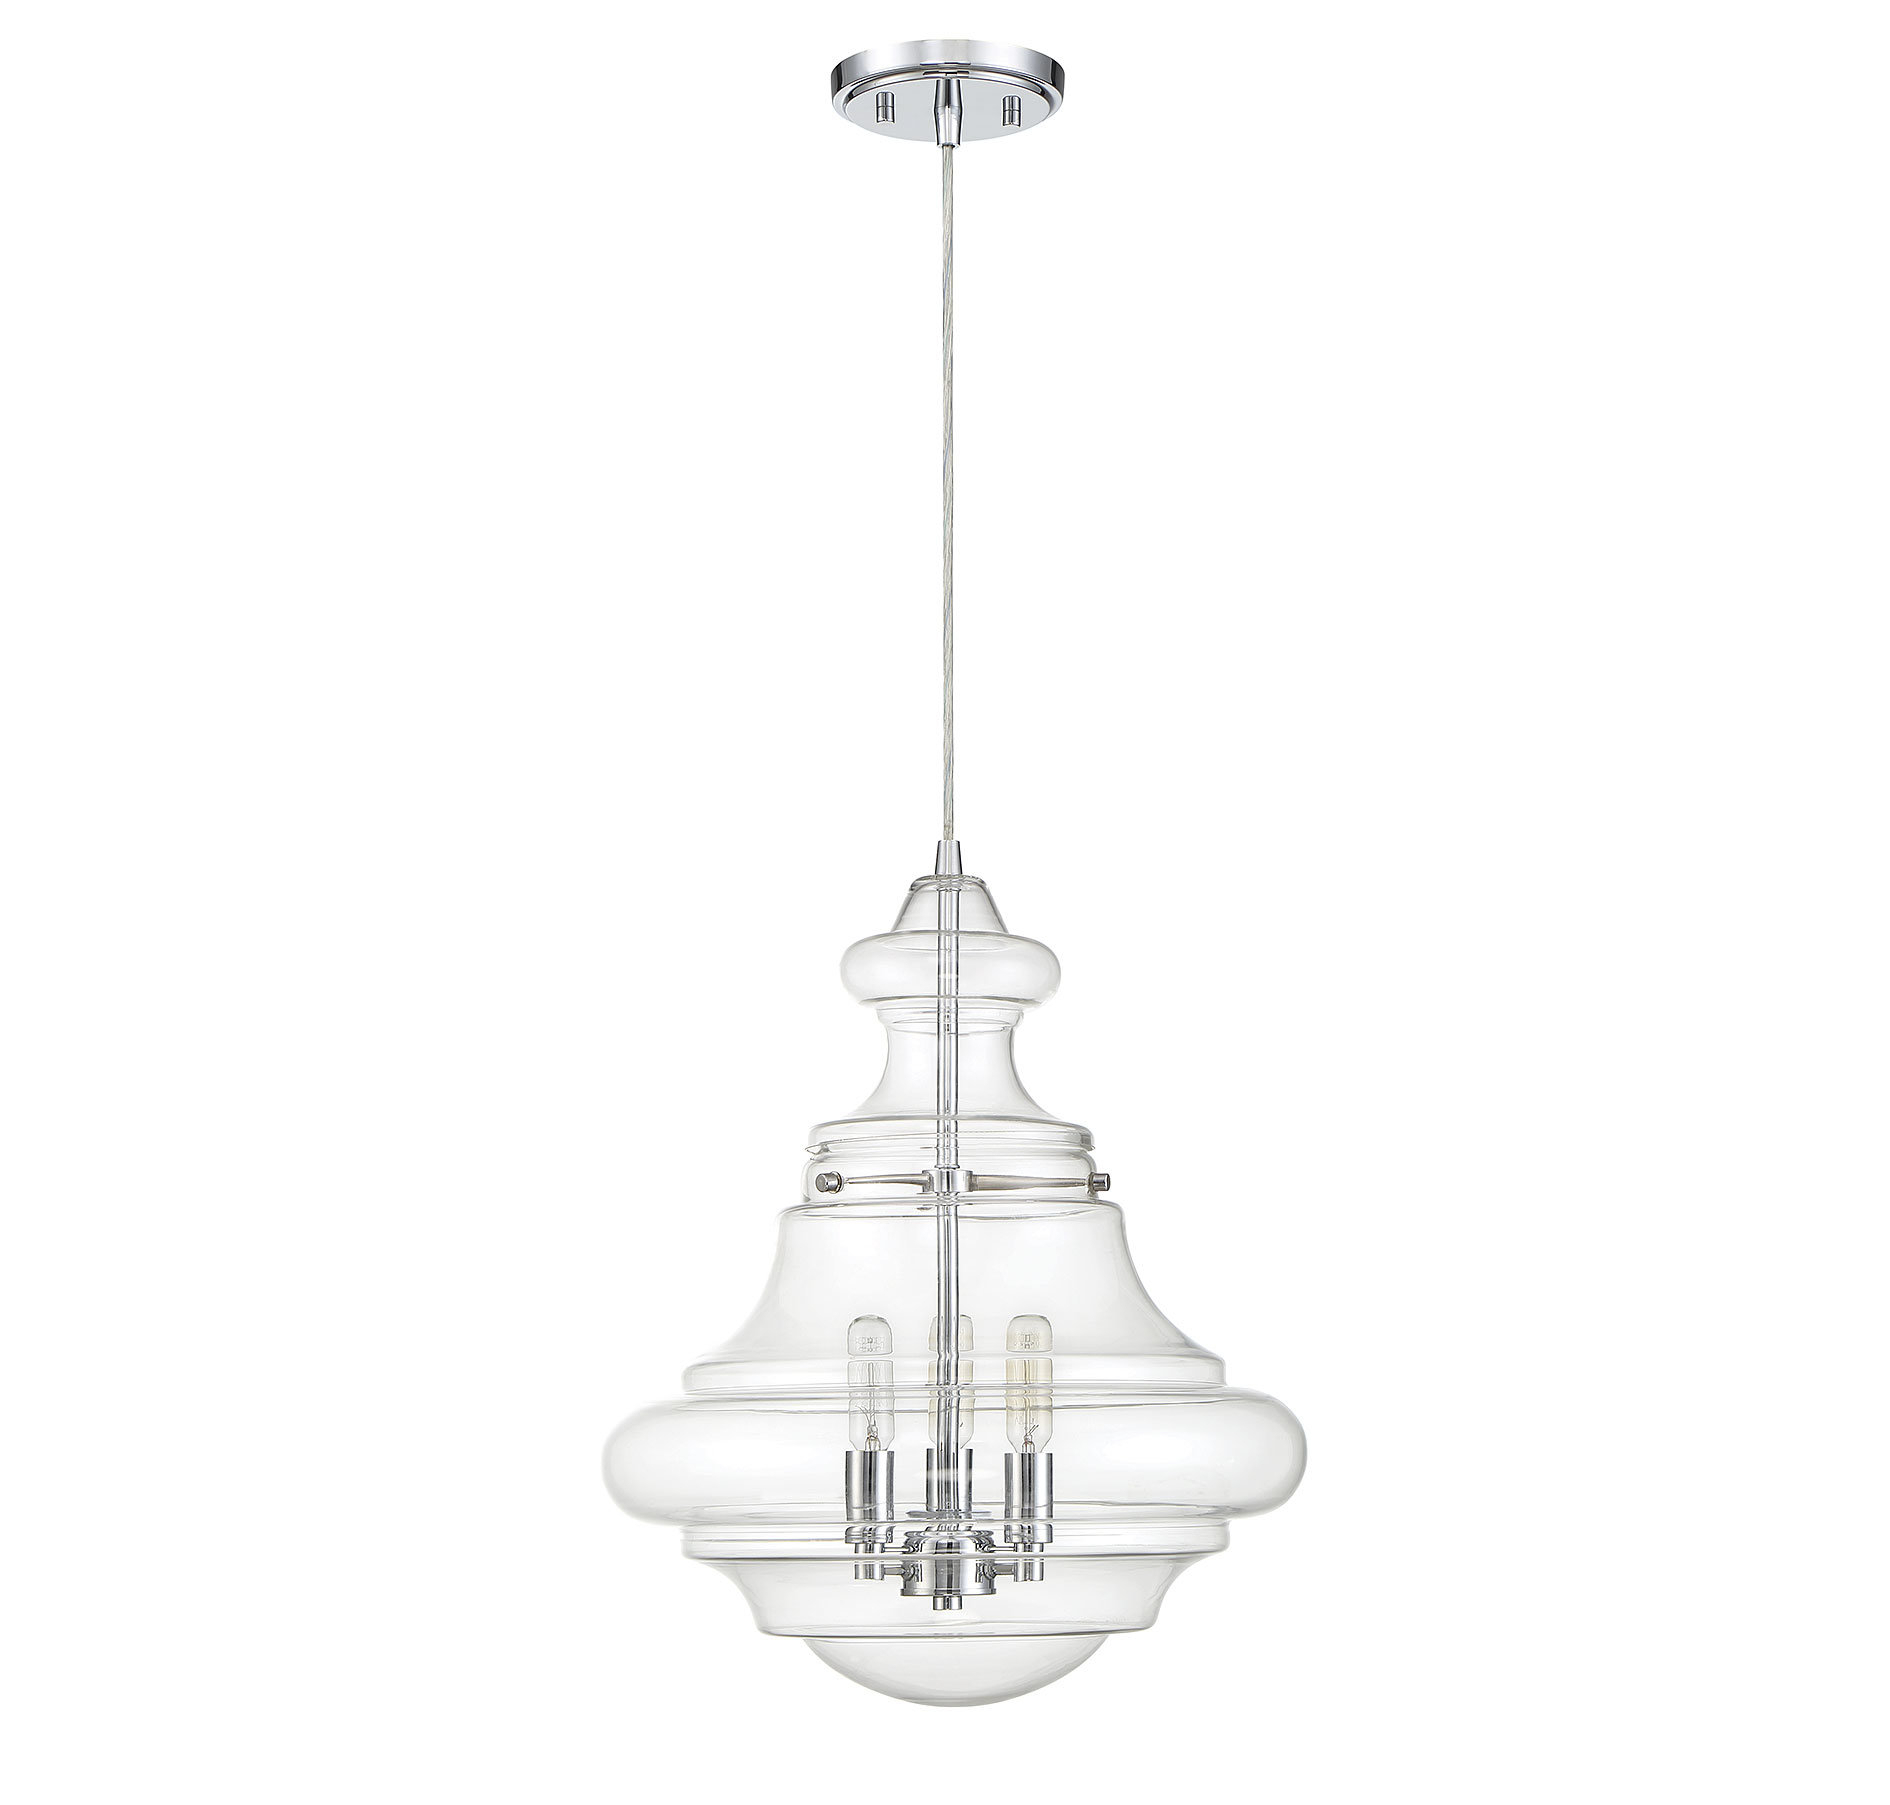 Edford 3 Light Single Schoolhouse Pendant Within 1 Light Single Schoolhouse Pendants (Gallery 26 of 30)